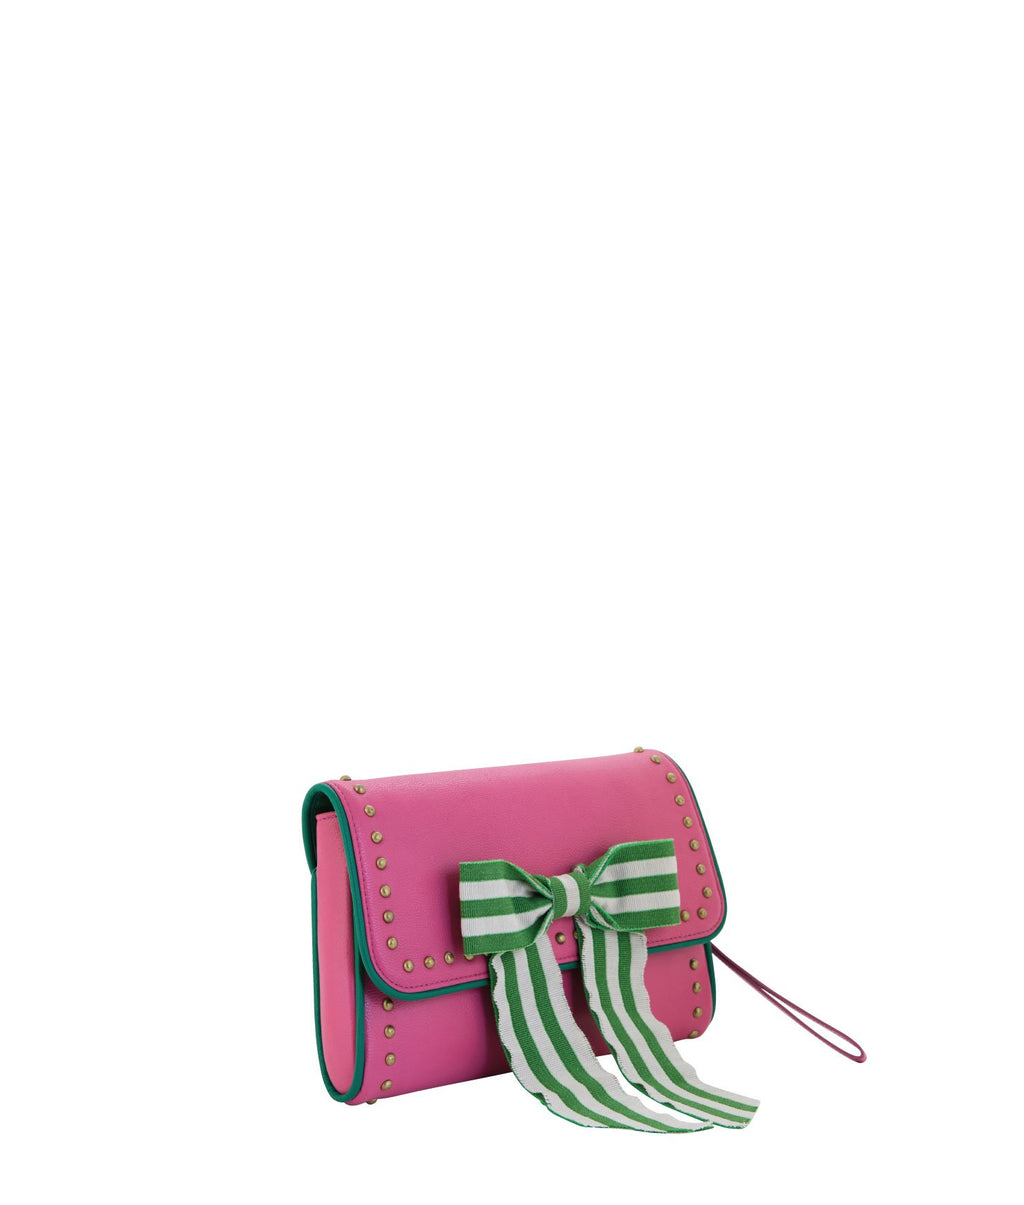 MAUDE Clutch - Pink Champagne